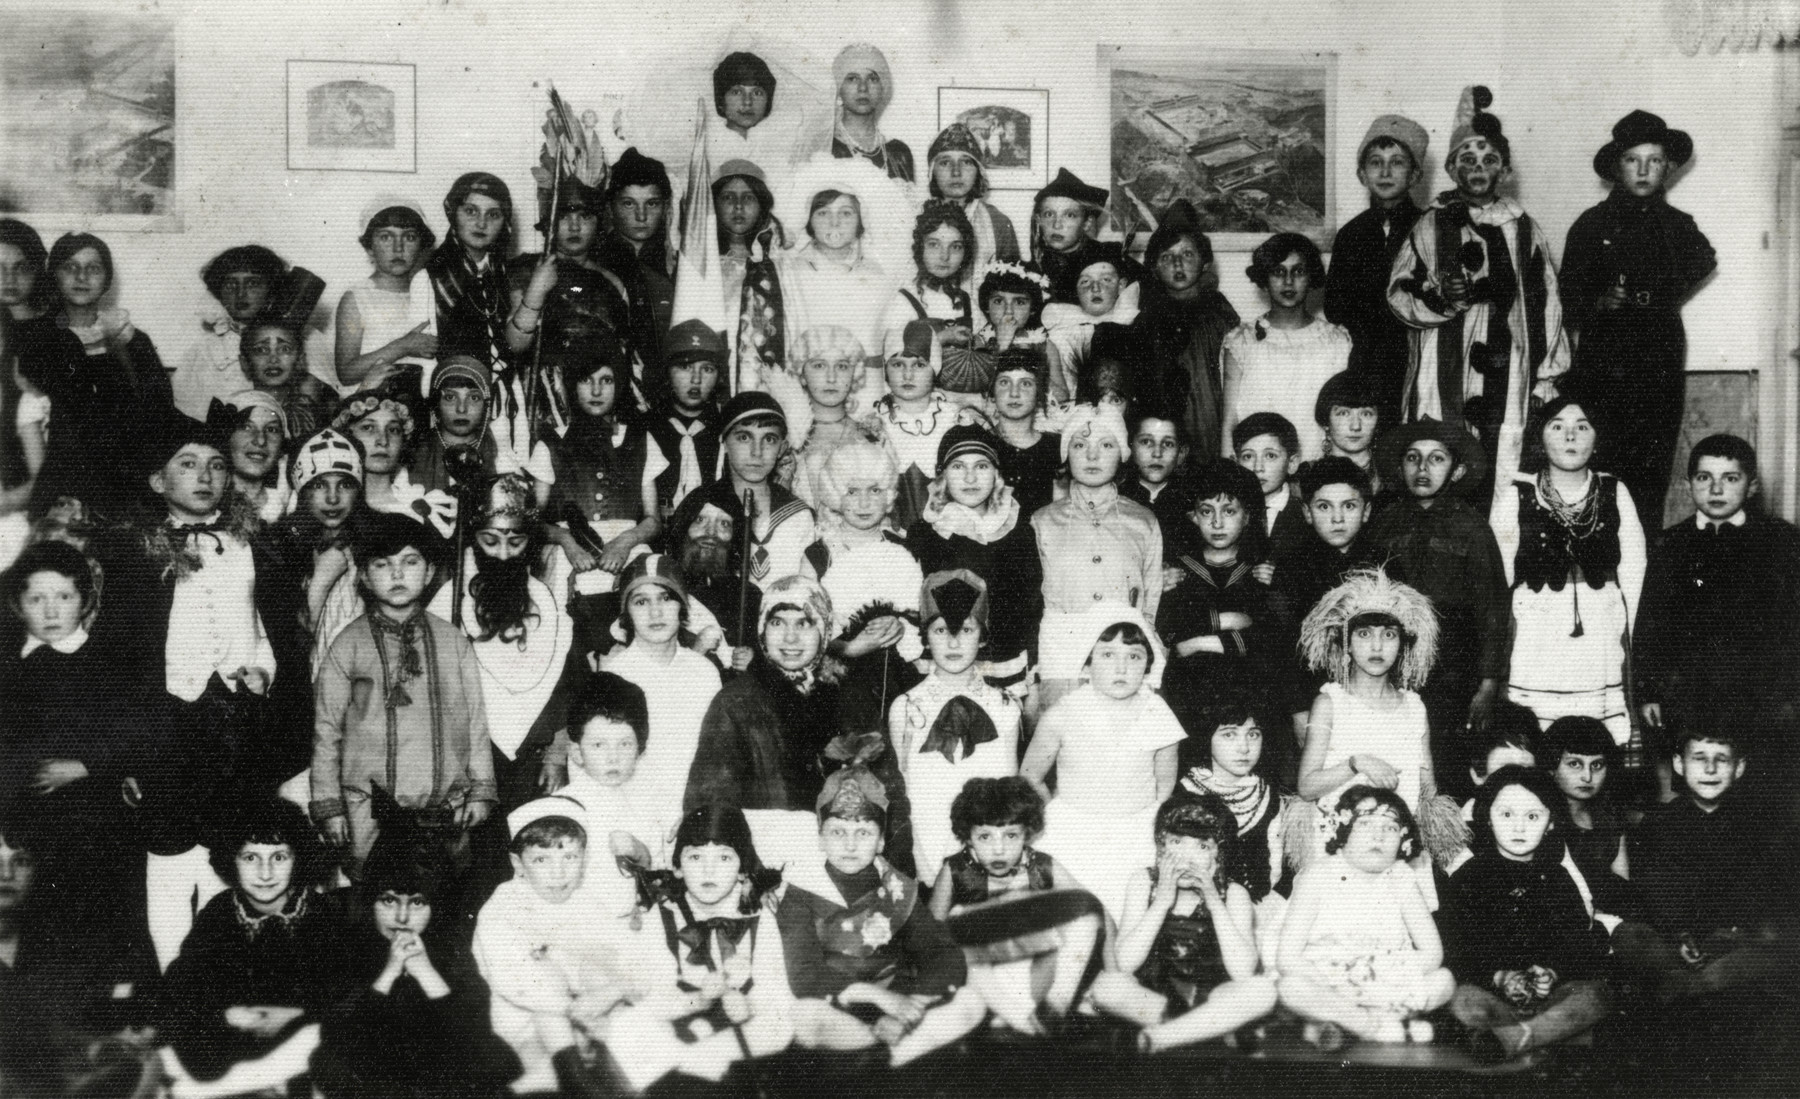 Children in the Humanistic school in Lublin, Poland pose for a group portrait in their Purim costumes.  Among those pictured is Yocheved Fryd dressed as Rebecca in a head scarf.